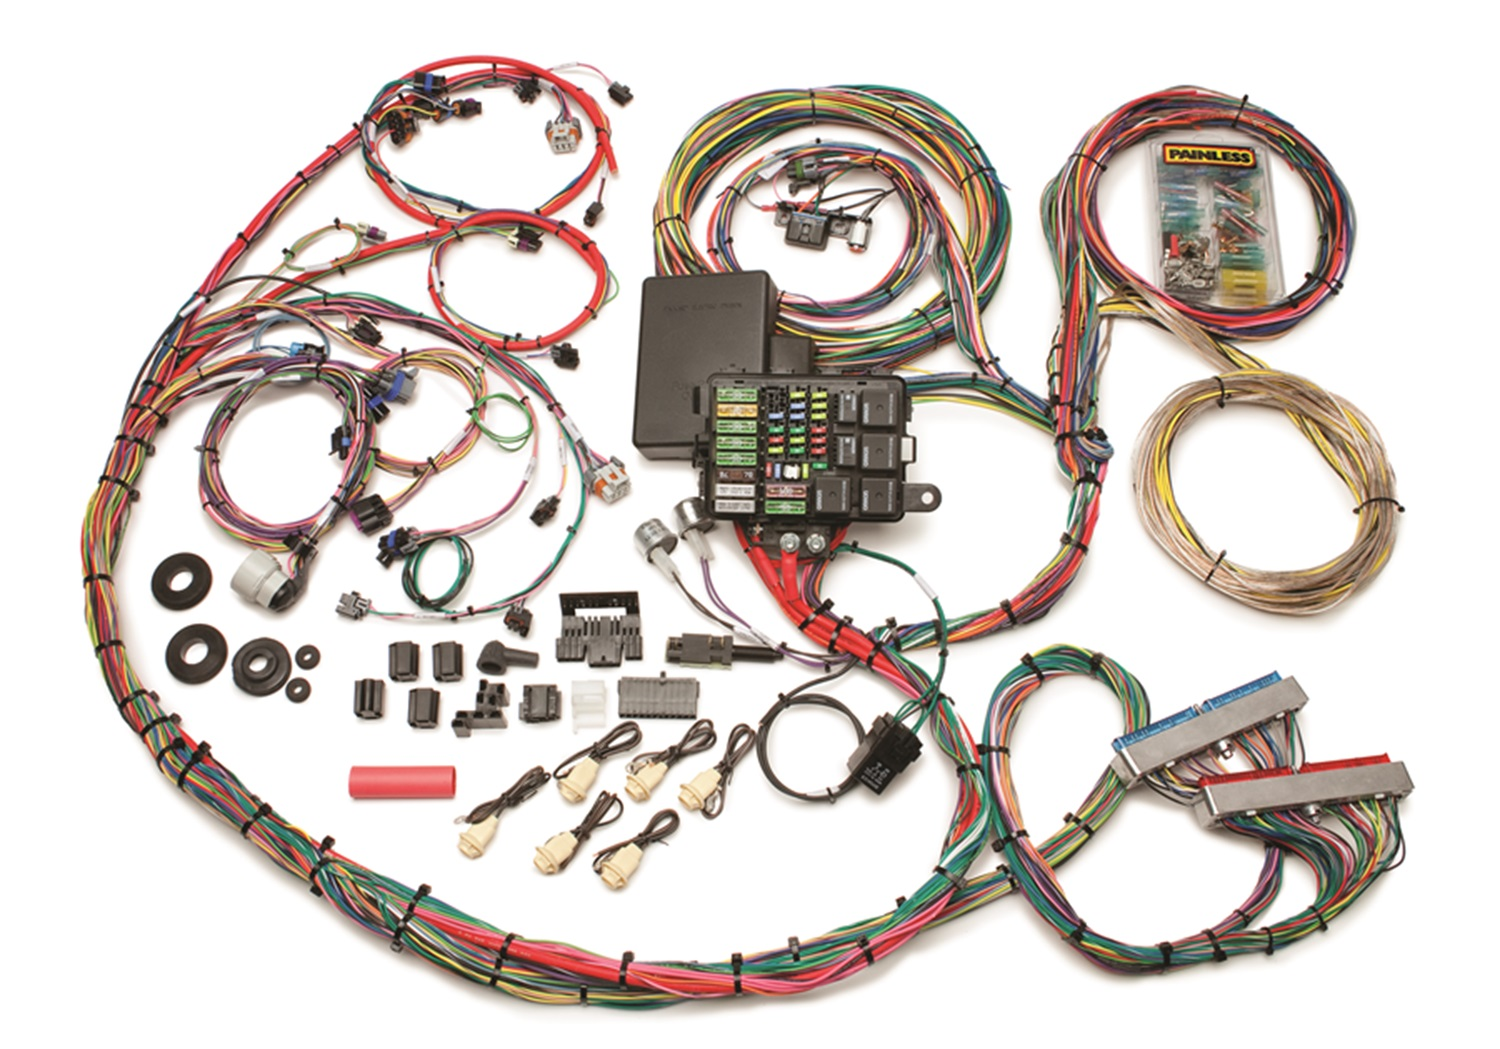 Product List Pispeedshops. Painless 60617 199905 GM Gen Iii 48 5360l Efichassis Harness Manual Throttle. Wiring. Universal Painless Wiring Harness Diagram Electric Fuel Pump At Scoala.co